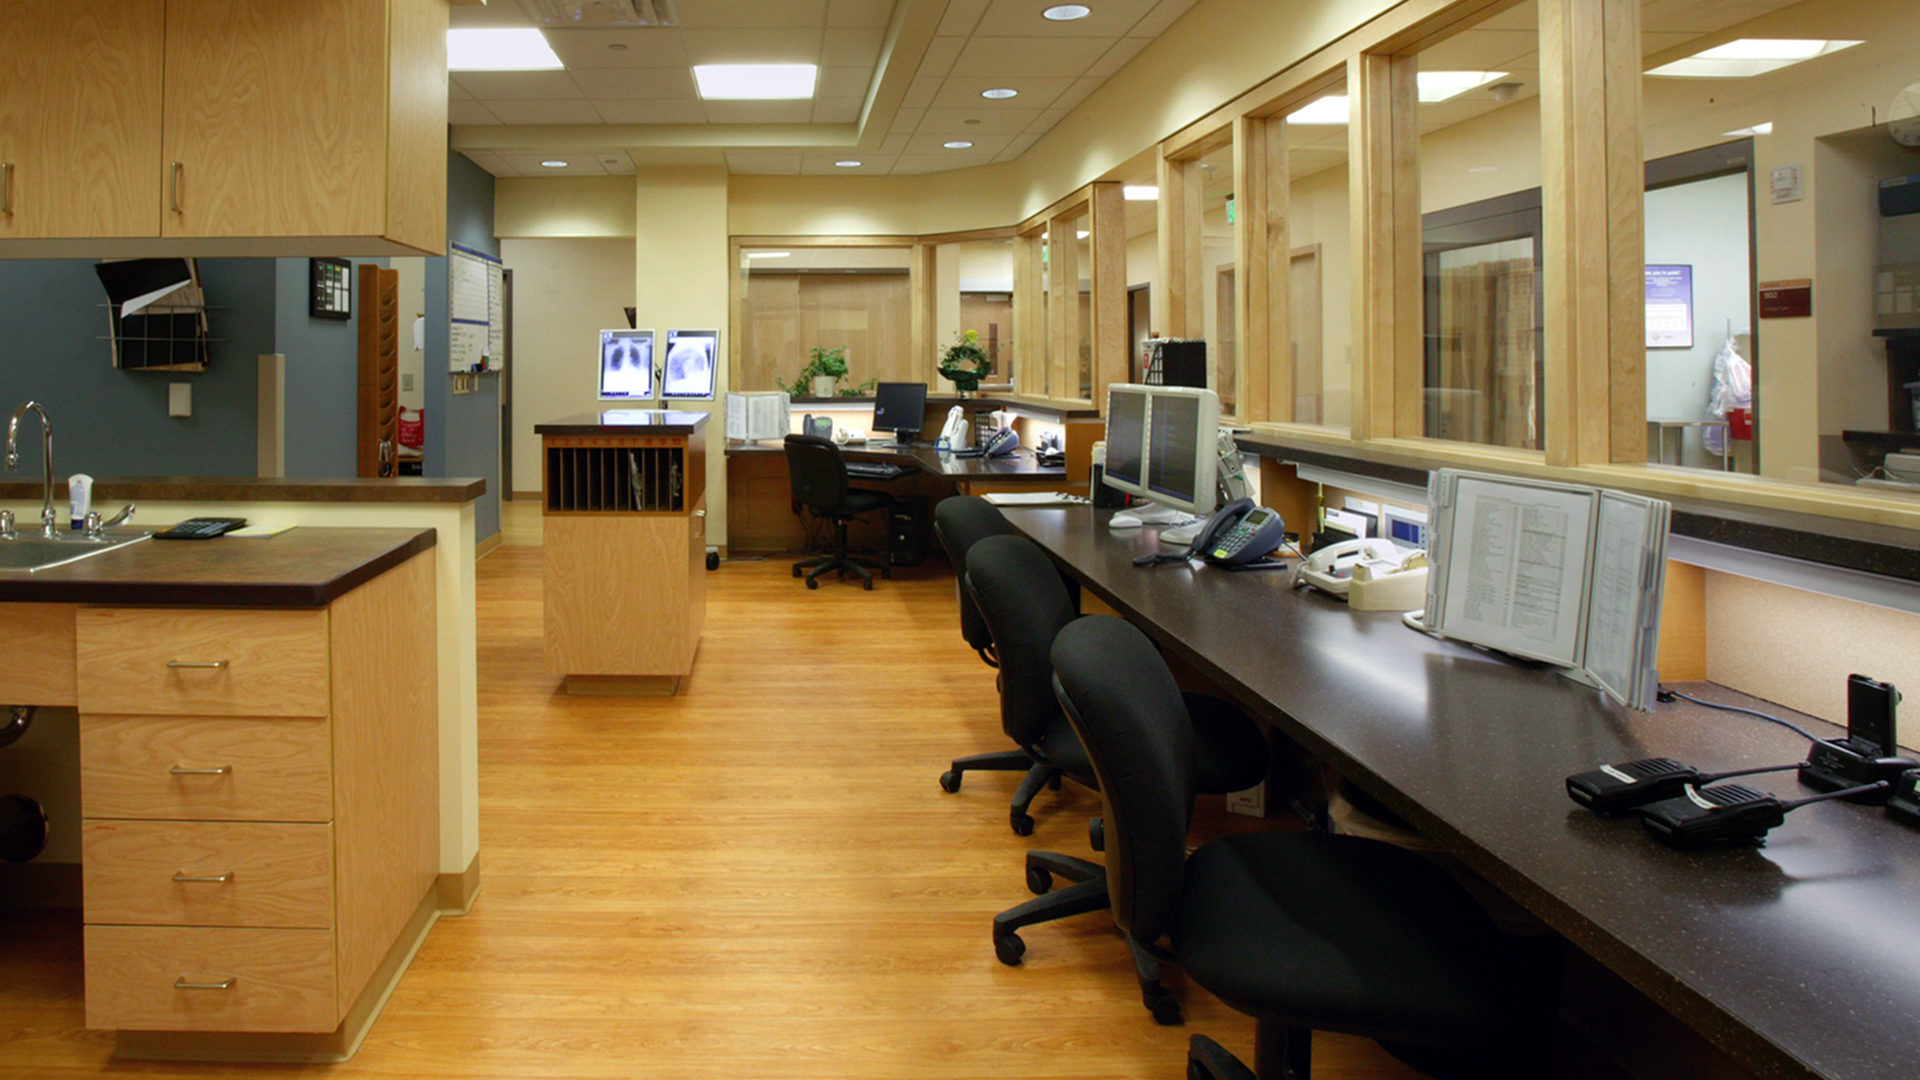 Grand Itasca Clinic & Hospital Nurses Station